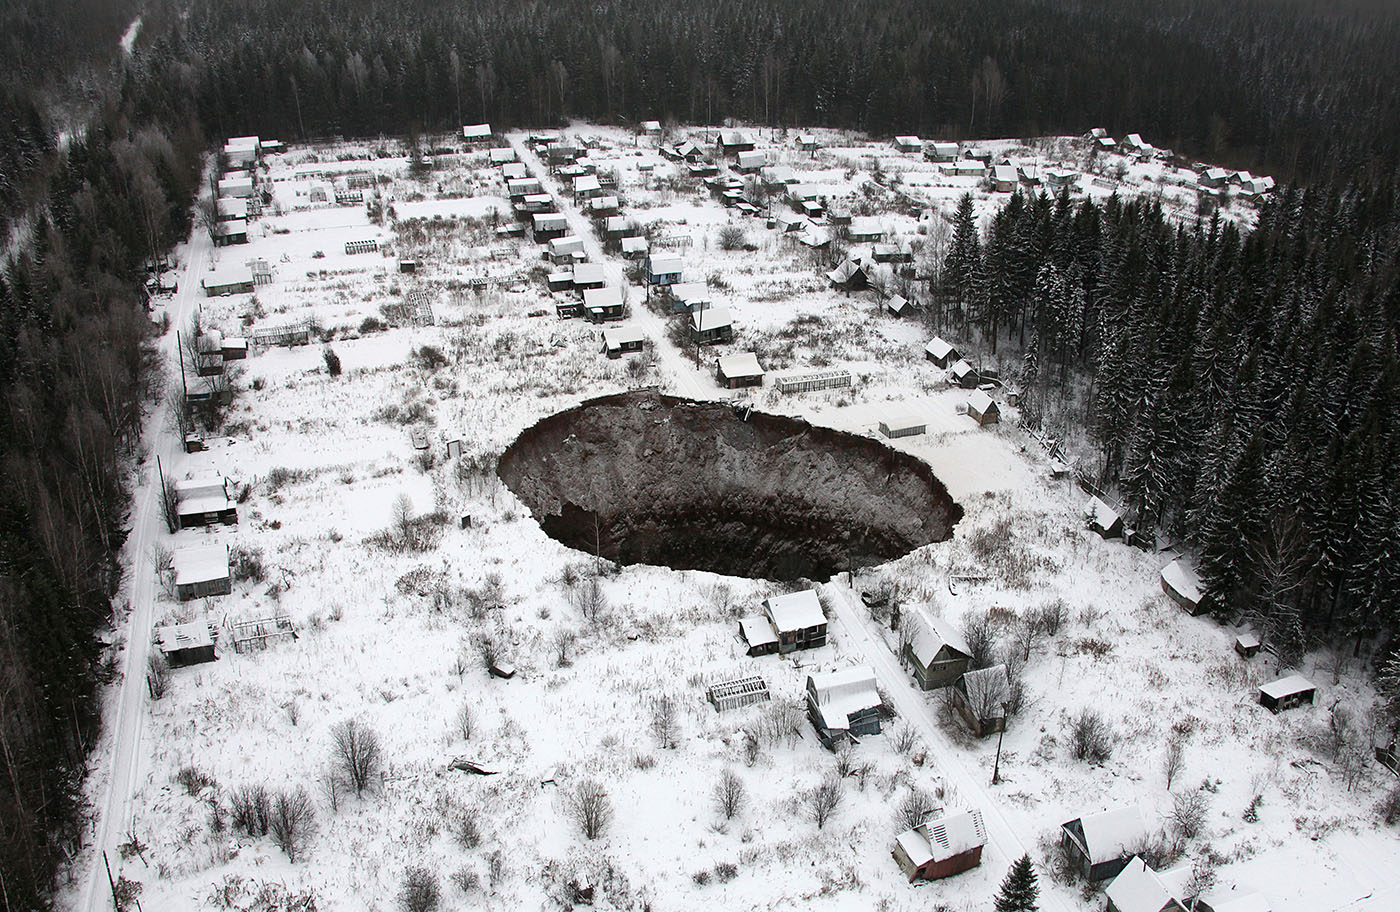 Sinkhole Found At Uralkali Mine In Russia's Solikamsk